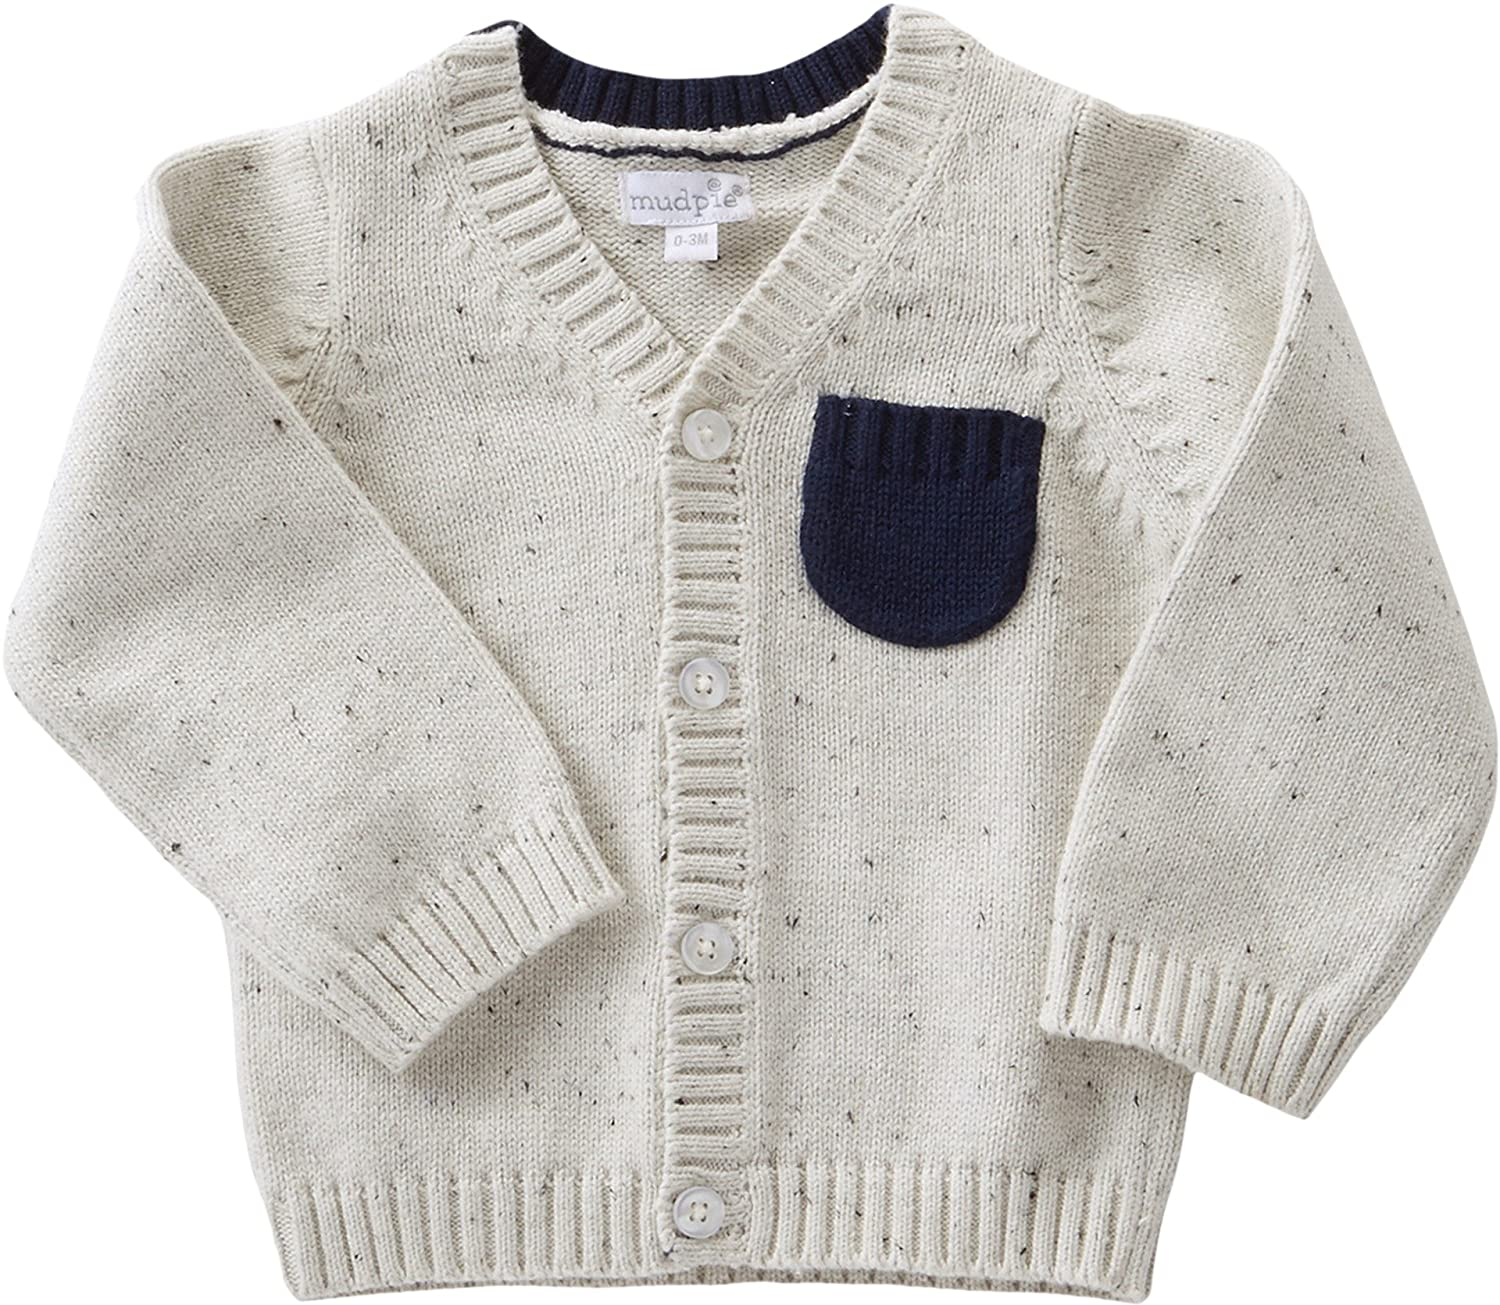 c4ac2012a Amazon.com  Mud Pie Baby Boy s Speckled Button Up Sweater (Infant ...